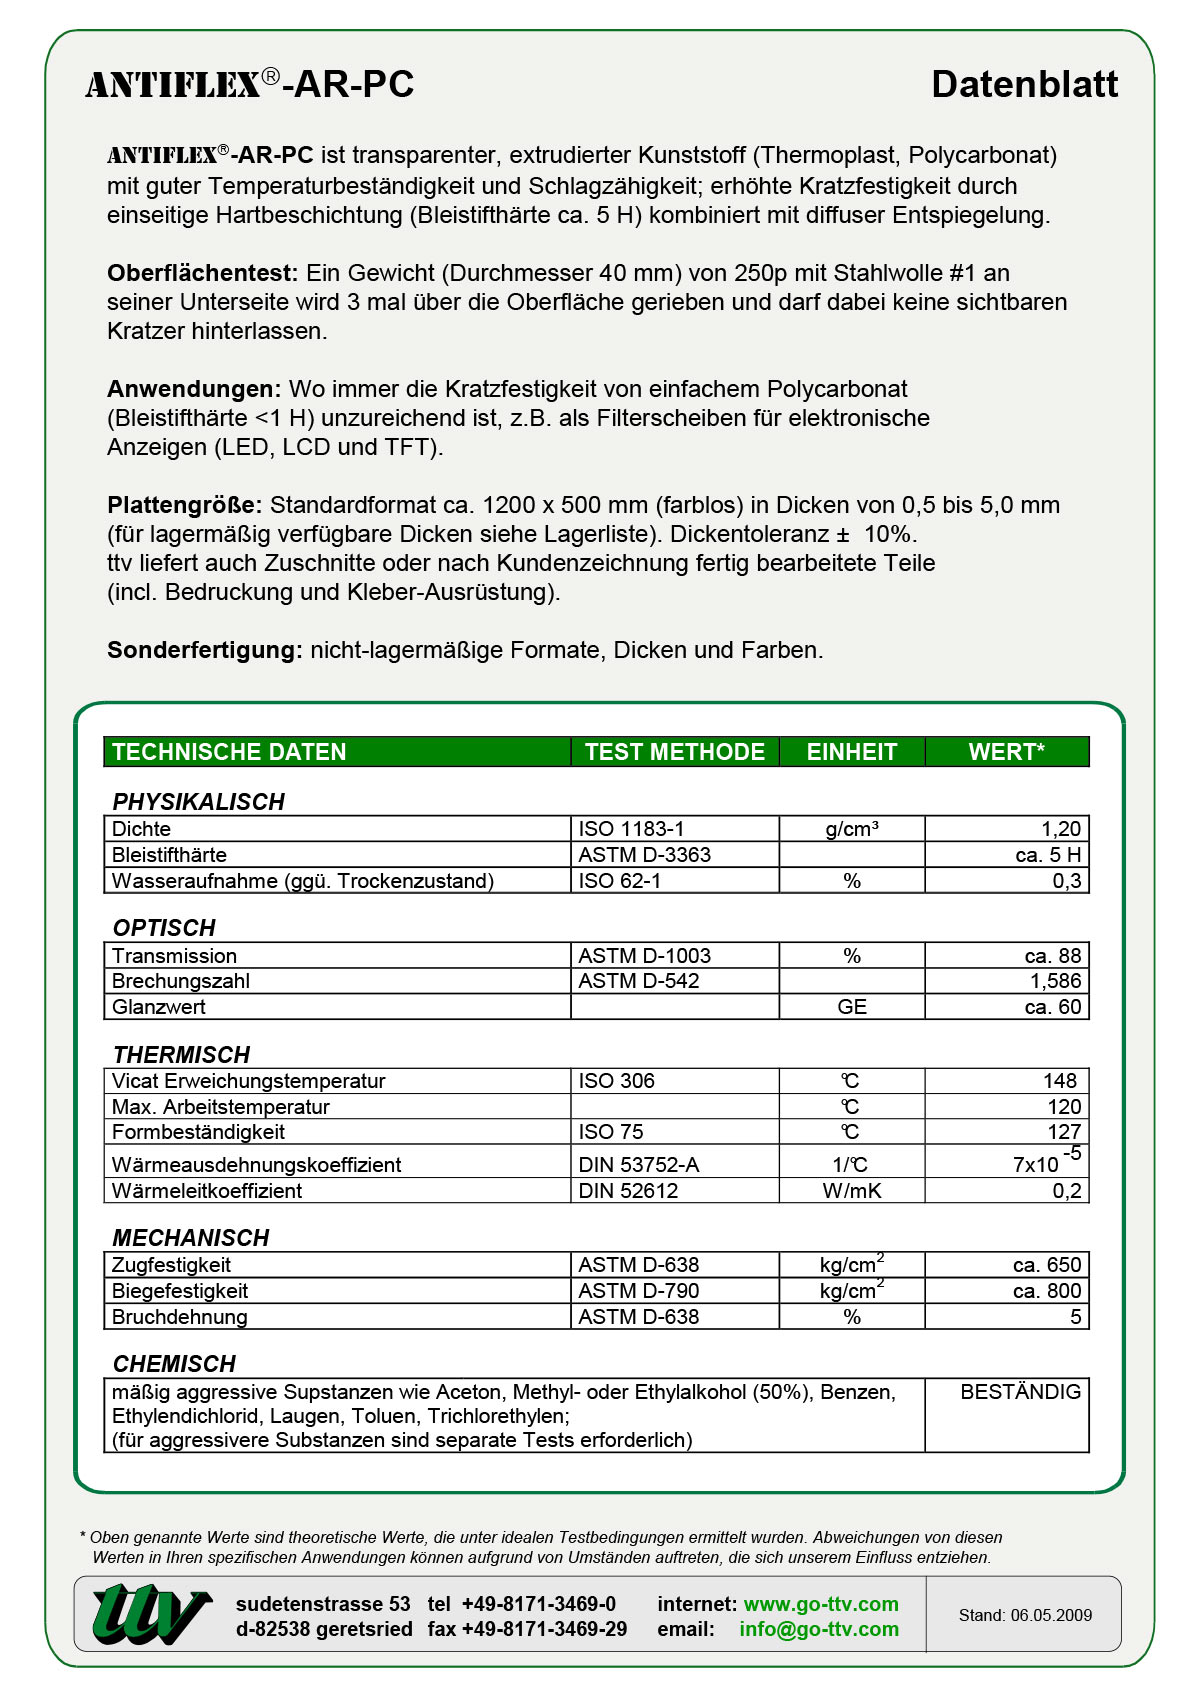 Antiflex-AR-PC Datenblatt